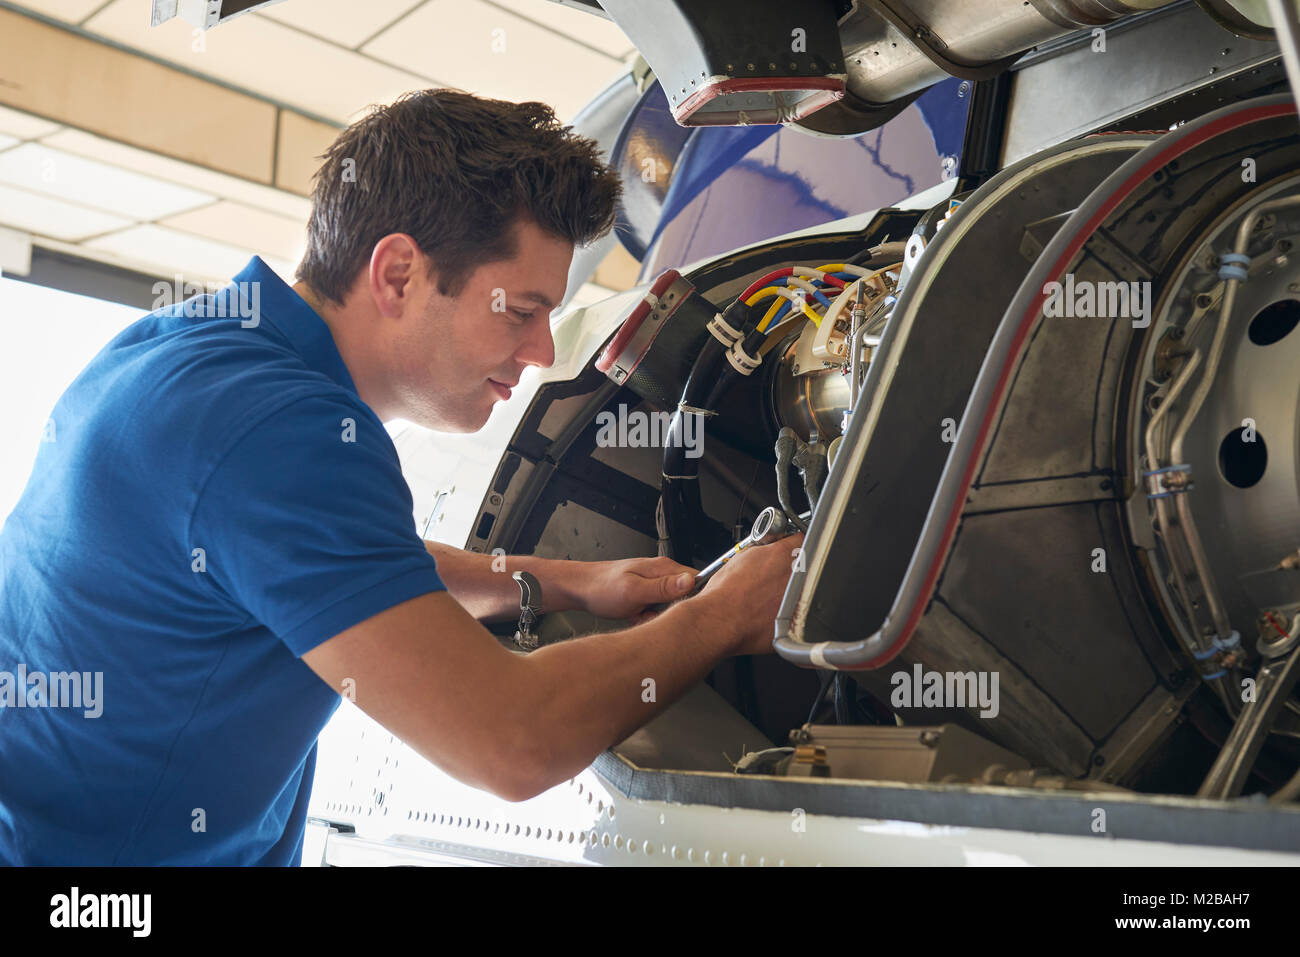 Male Aero Engineer Working On Helicopter In Hangar - Stock Image